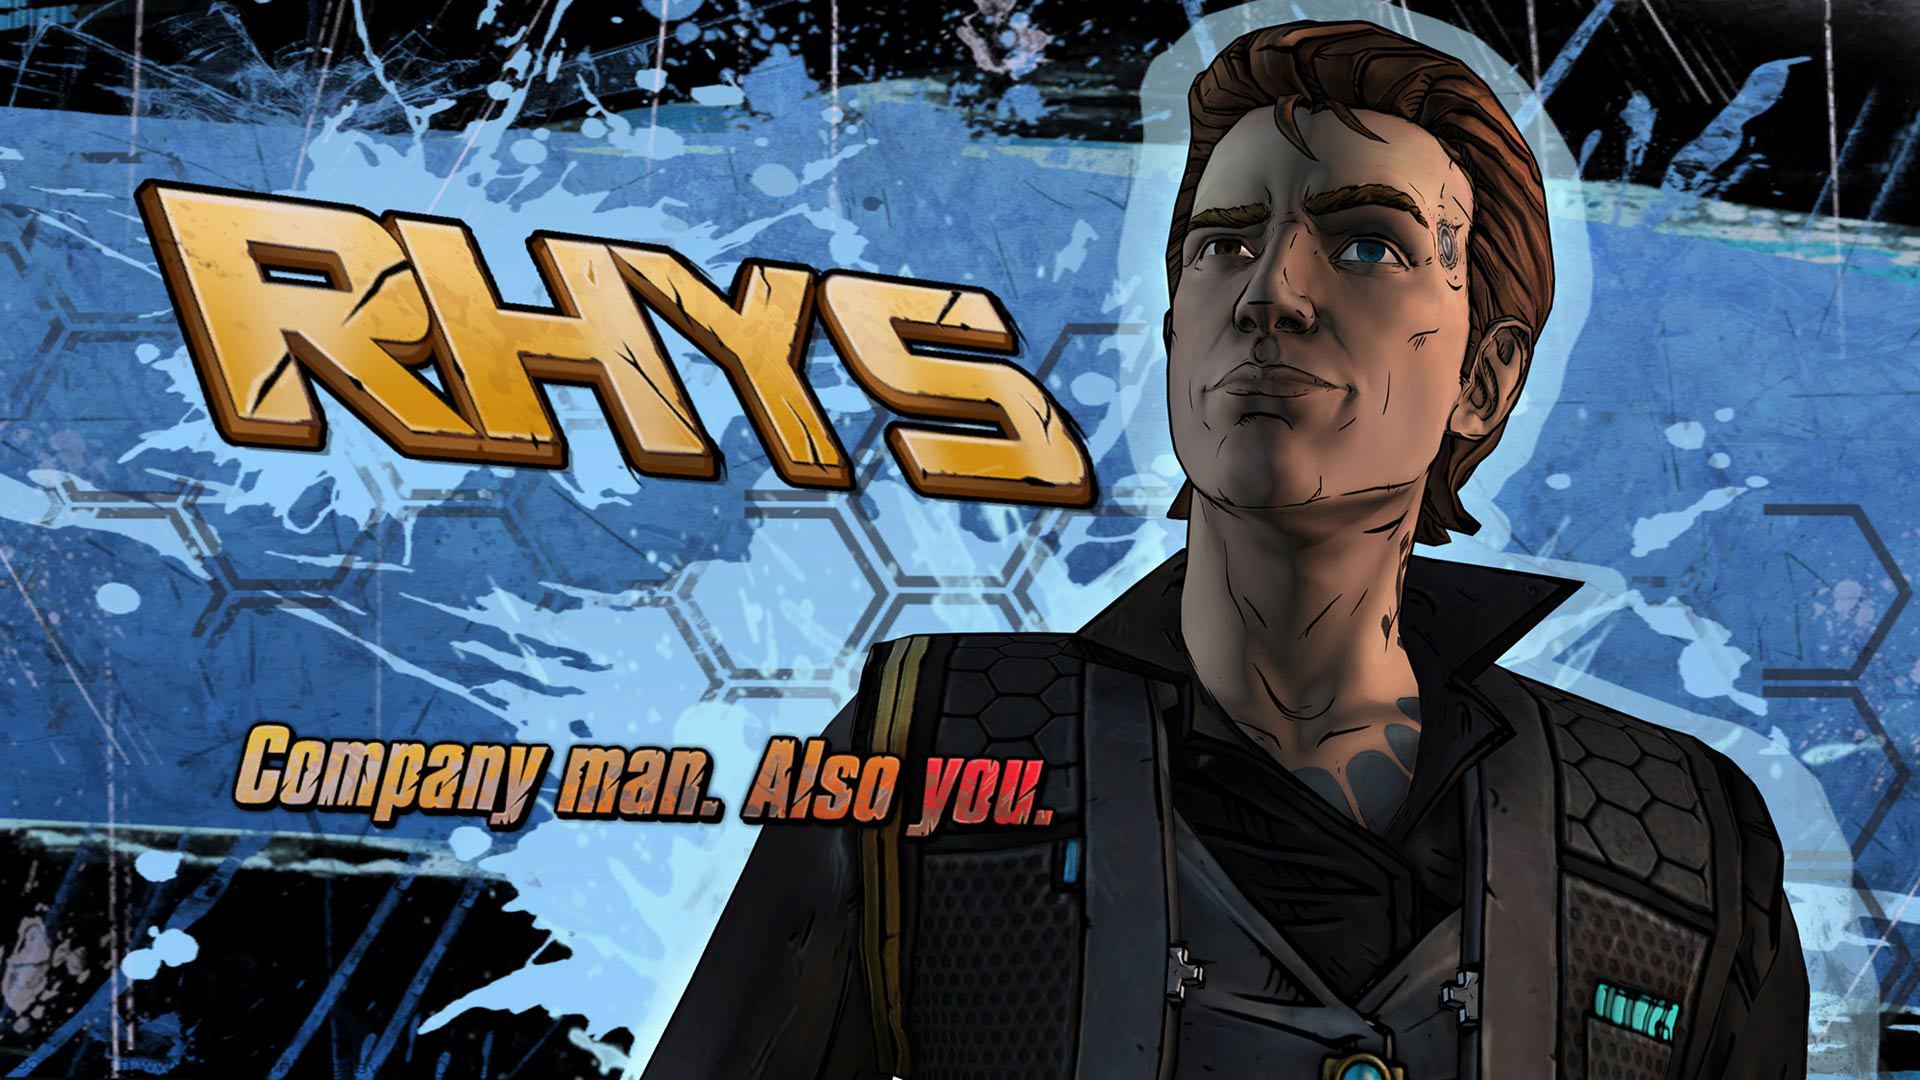 Tales from the Borderlands screenshot #7